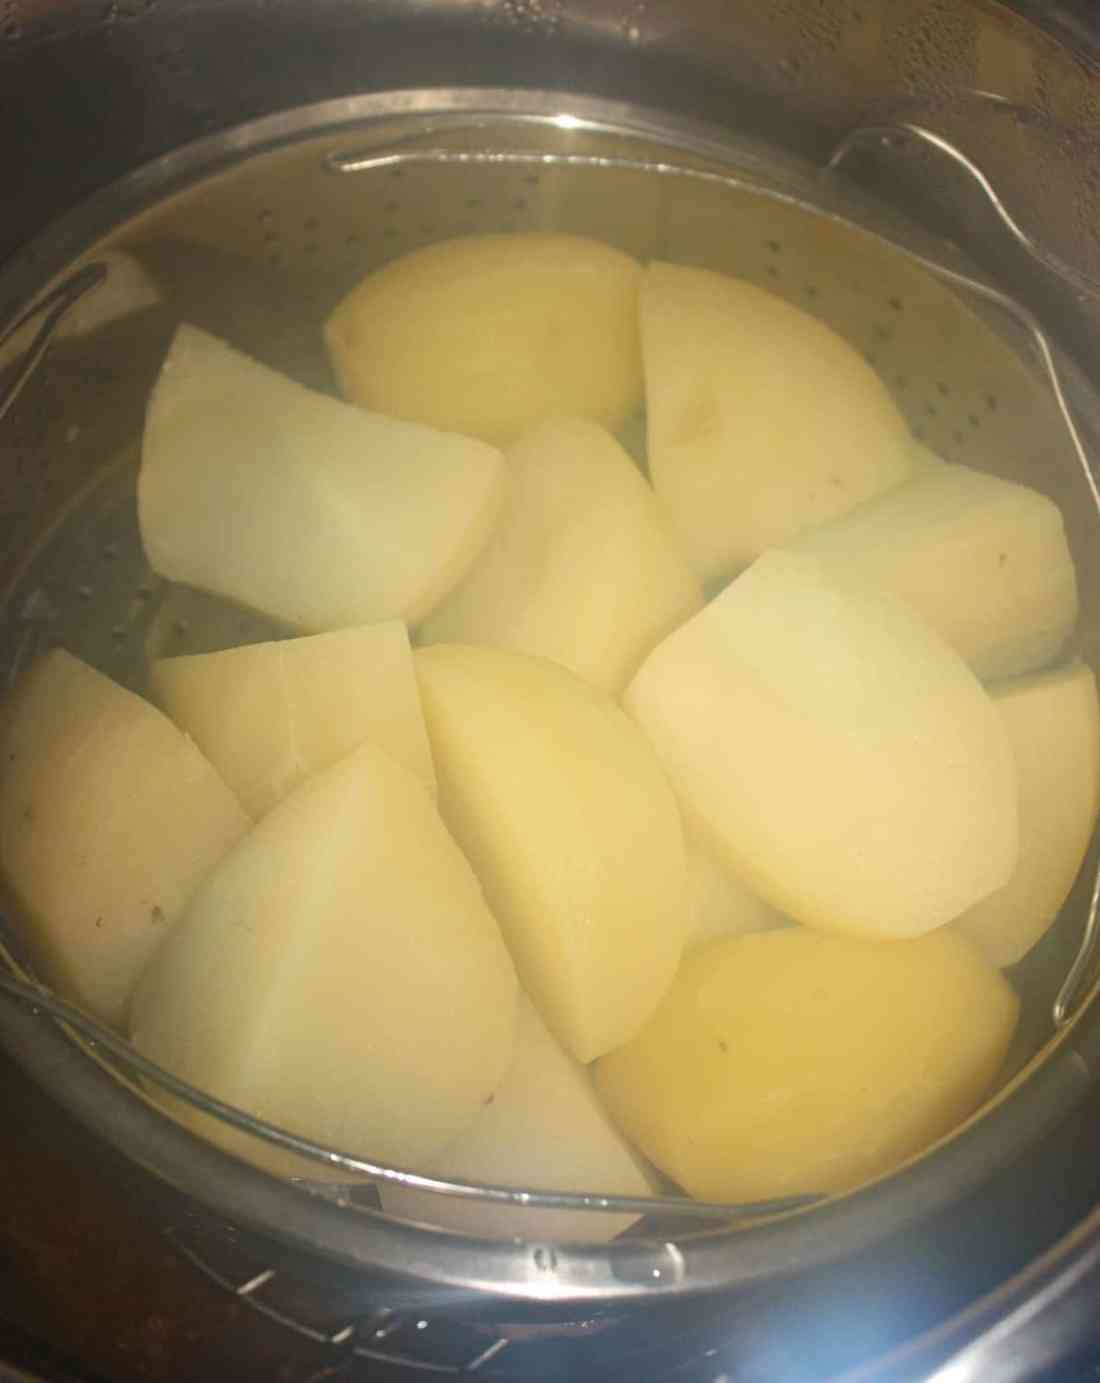 The cooked potatoes.